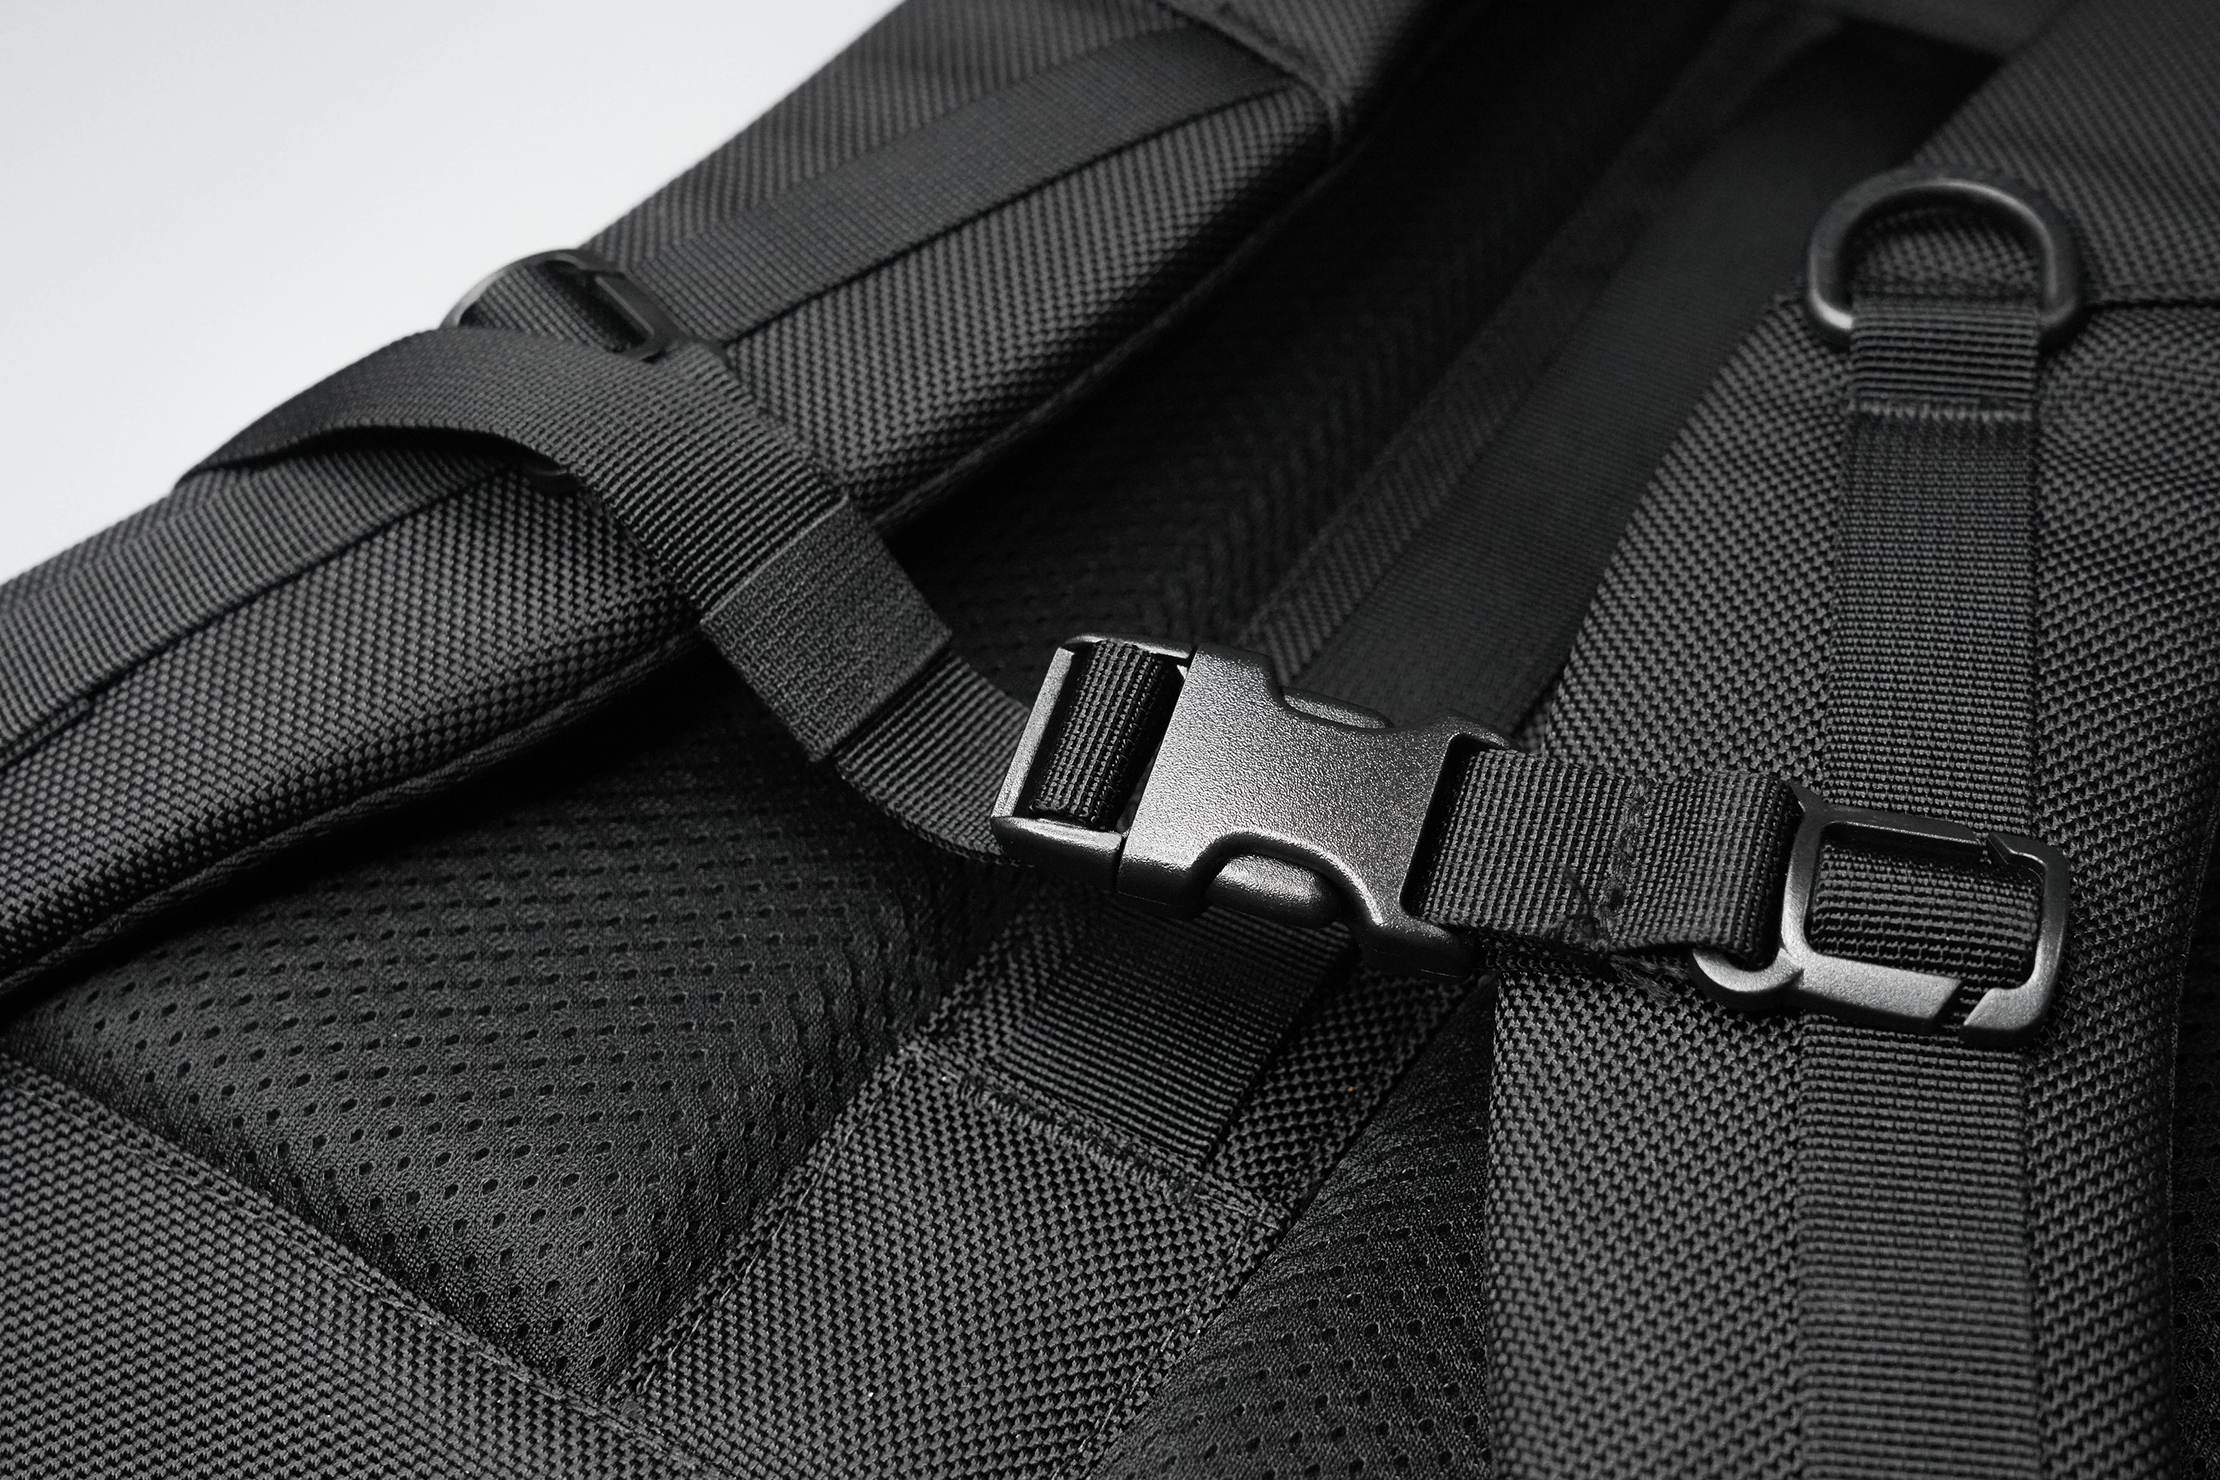 Aer Day Pack 2 Sternum Strap